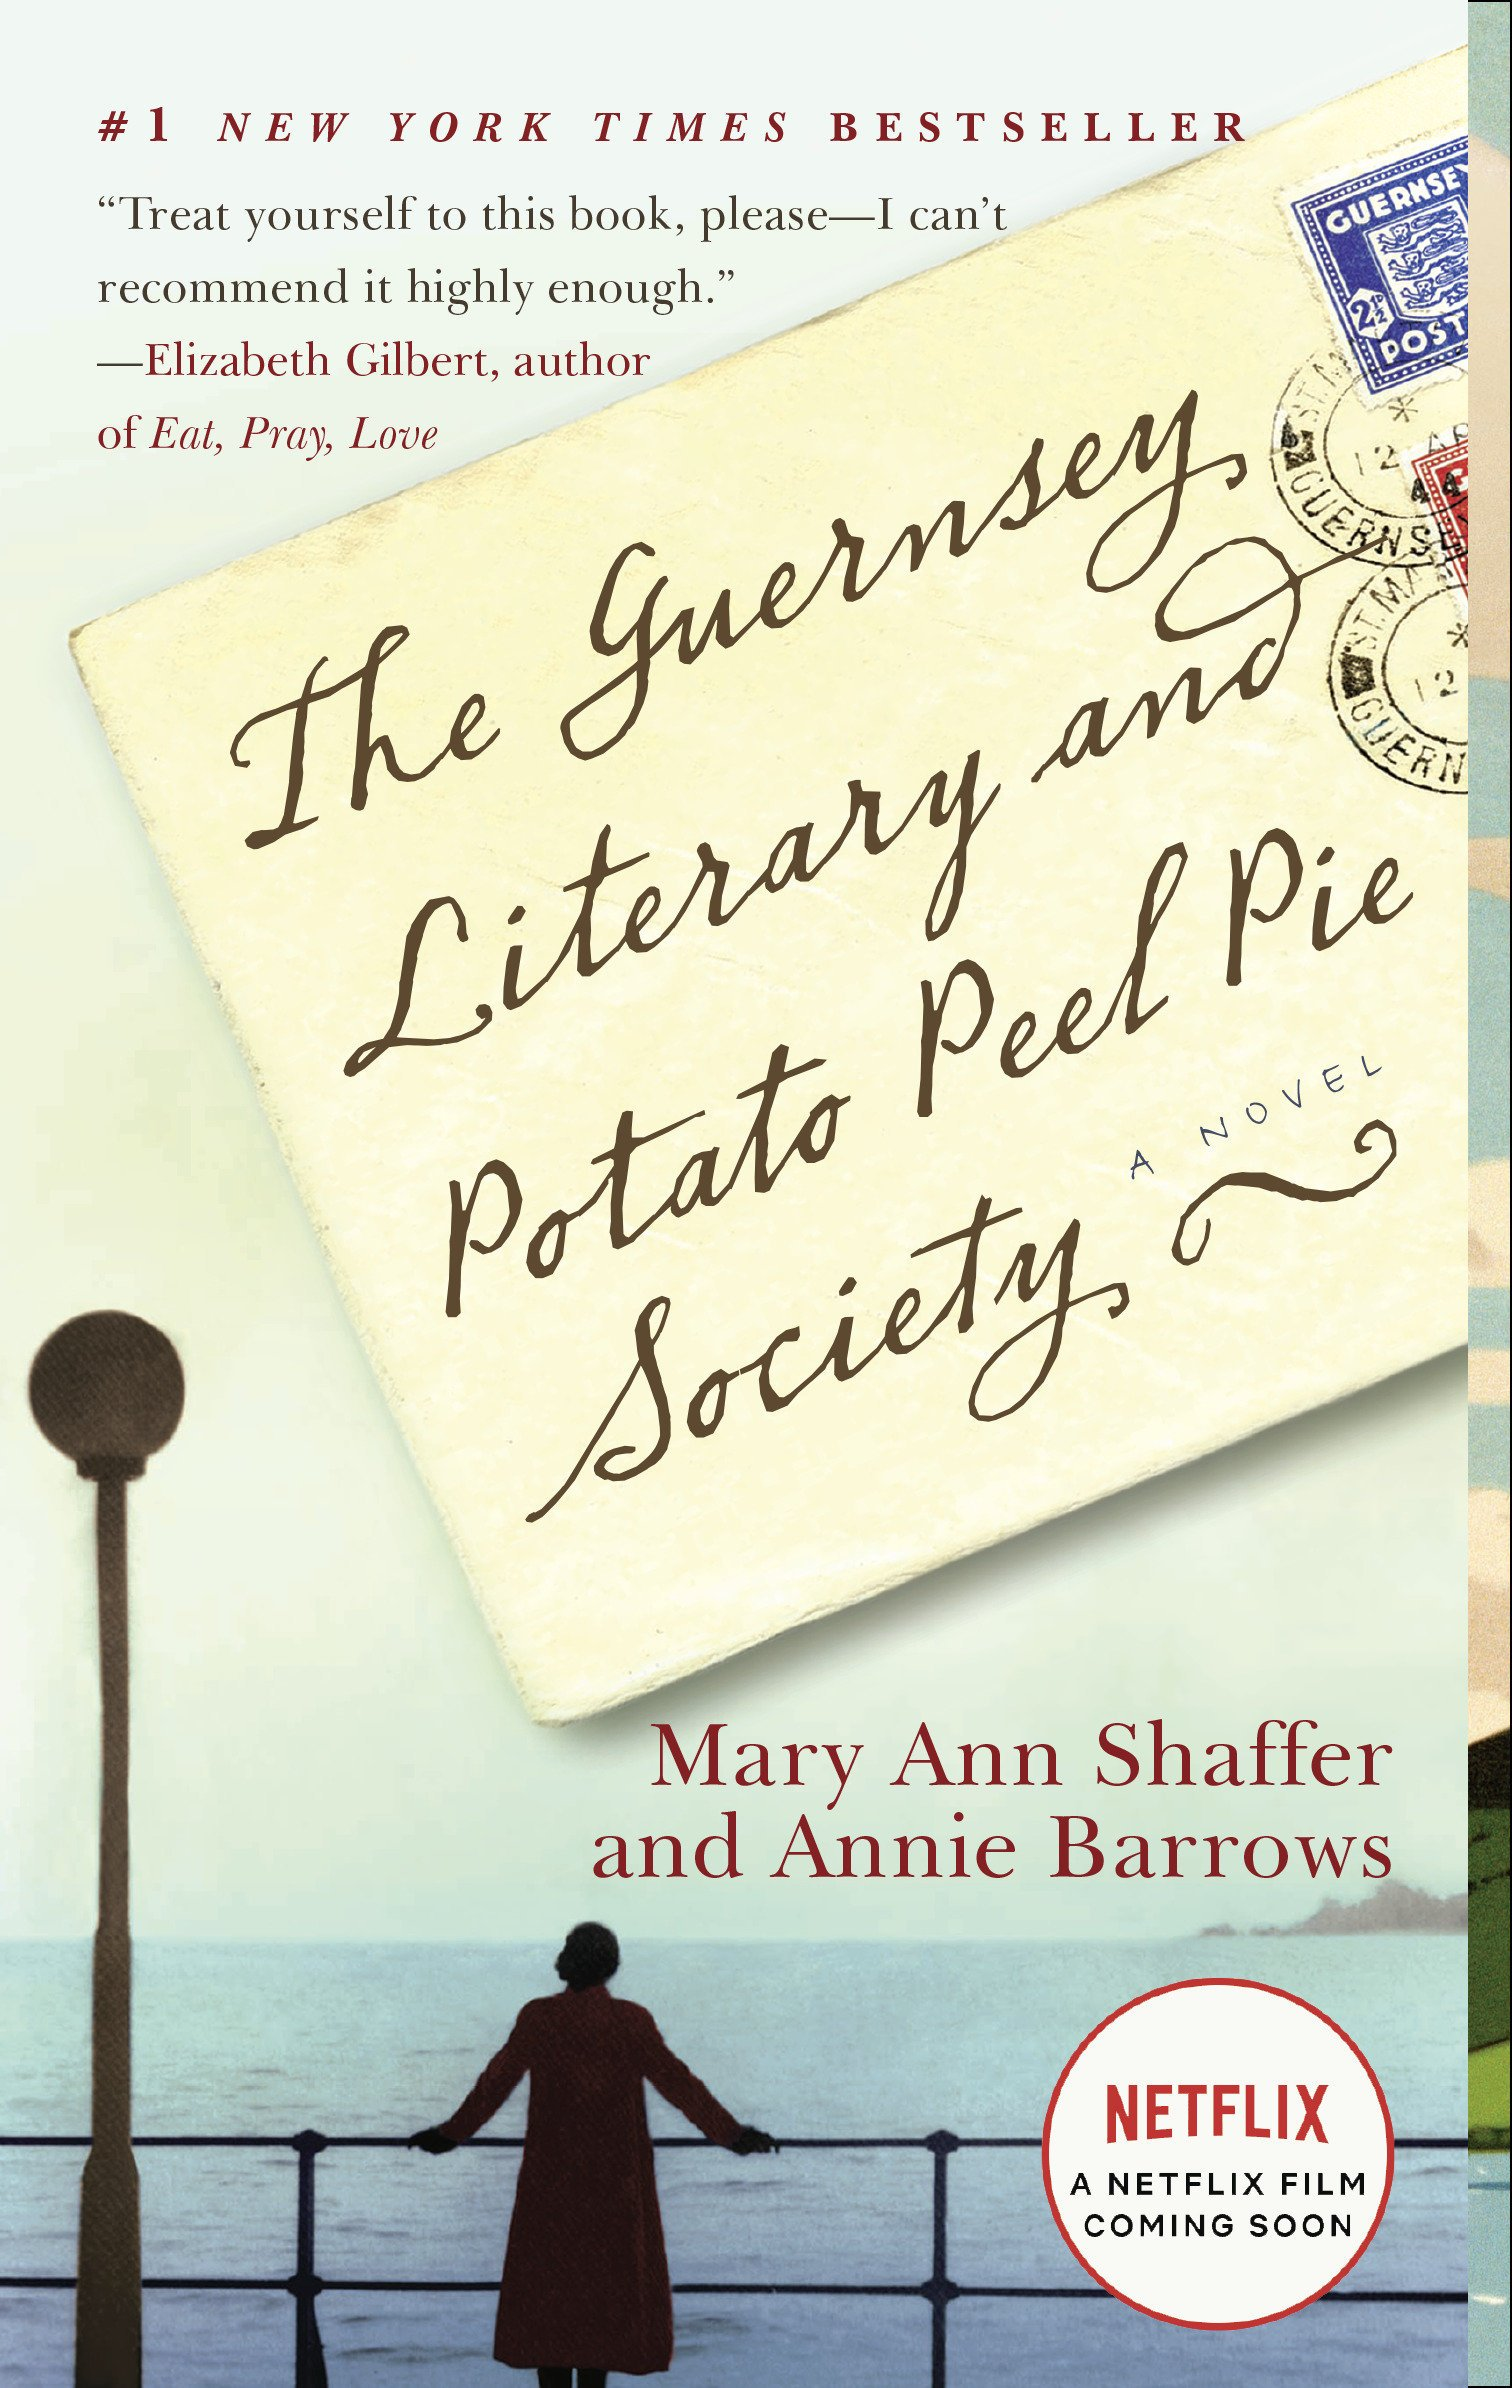 Image result for the guernsey literary and potato peel pie society book